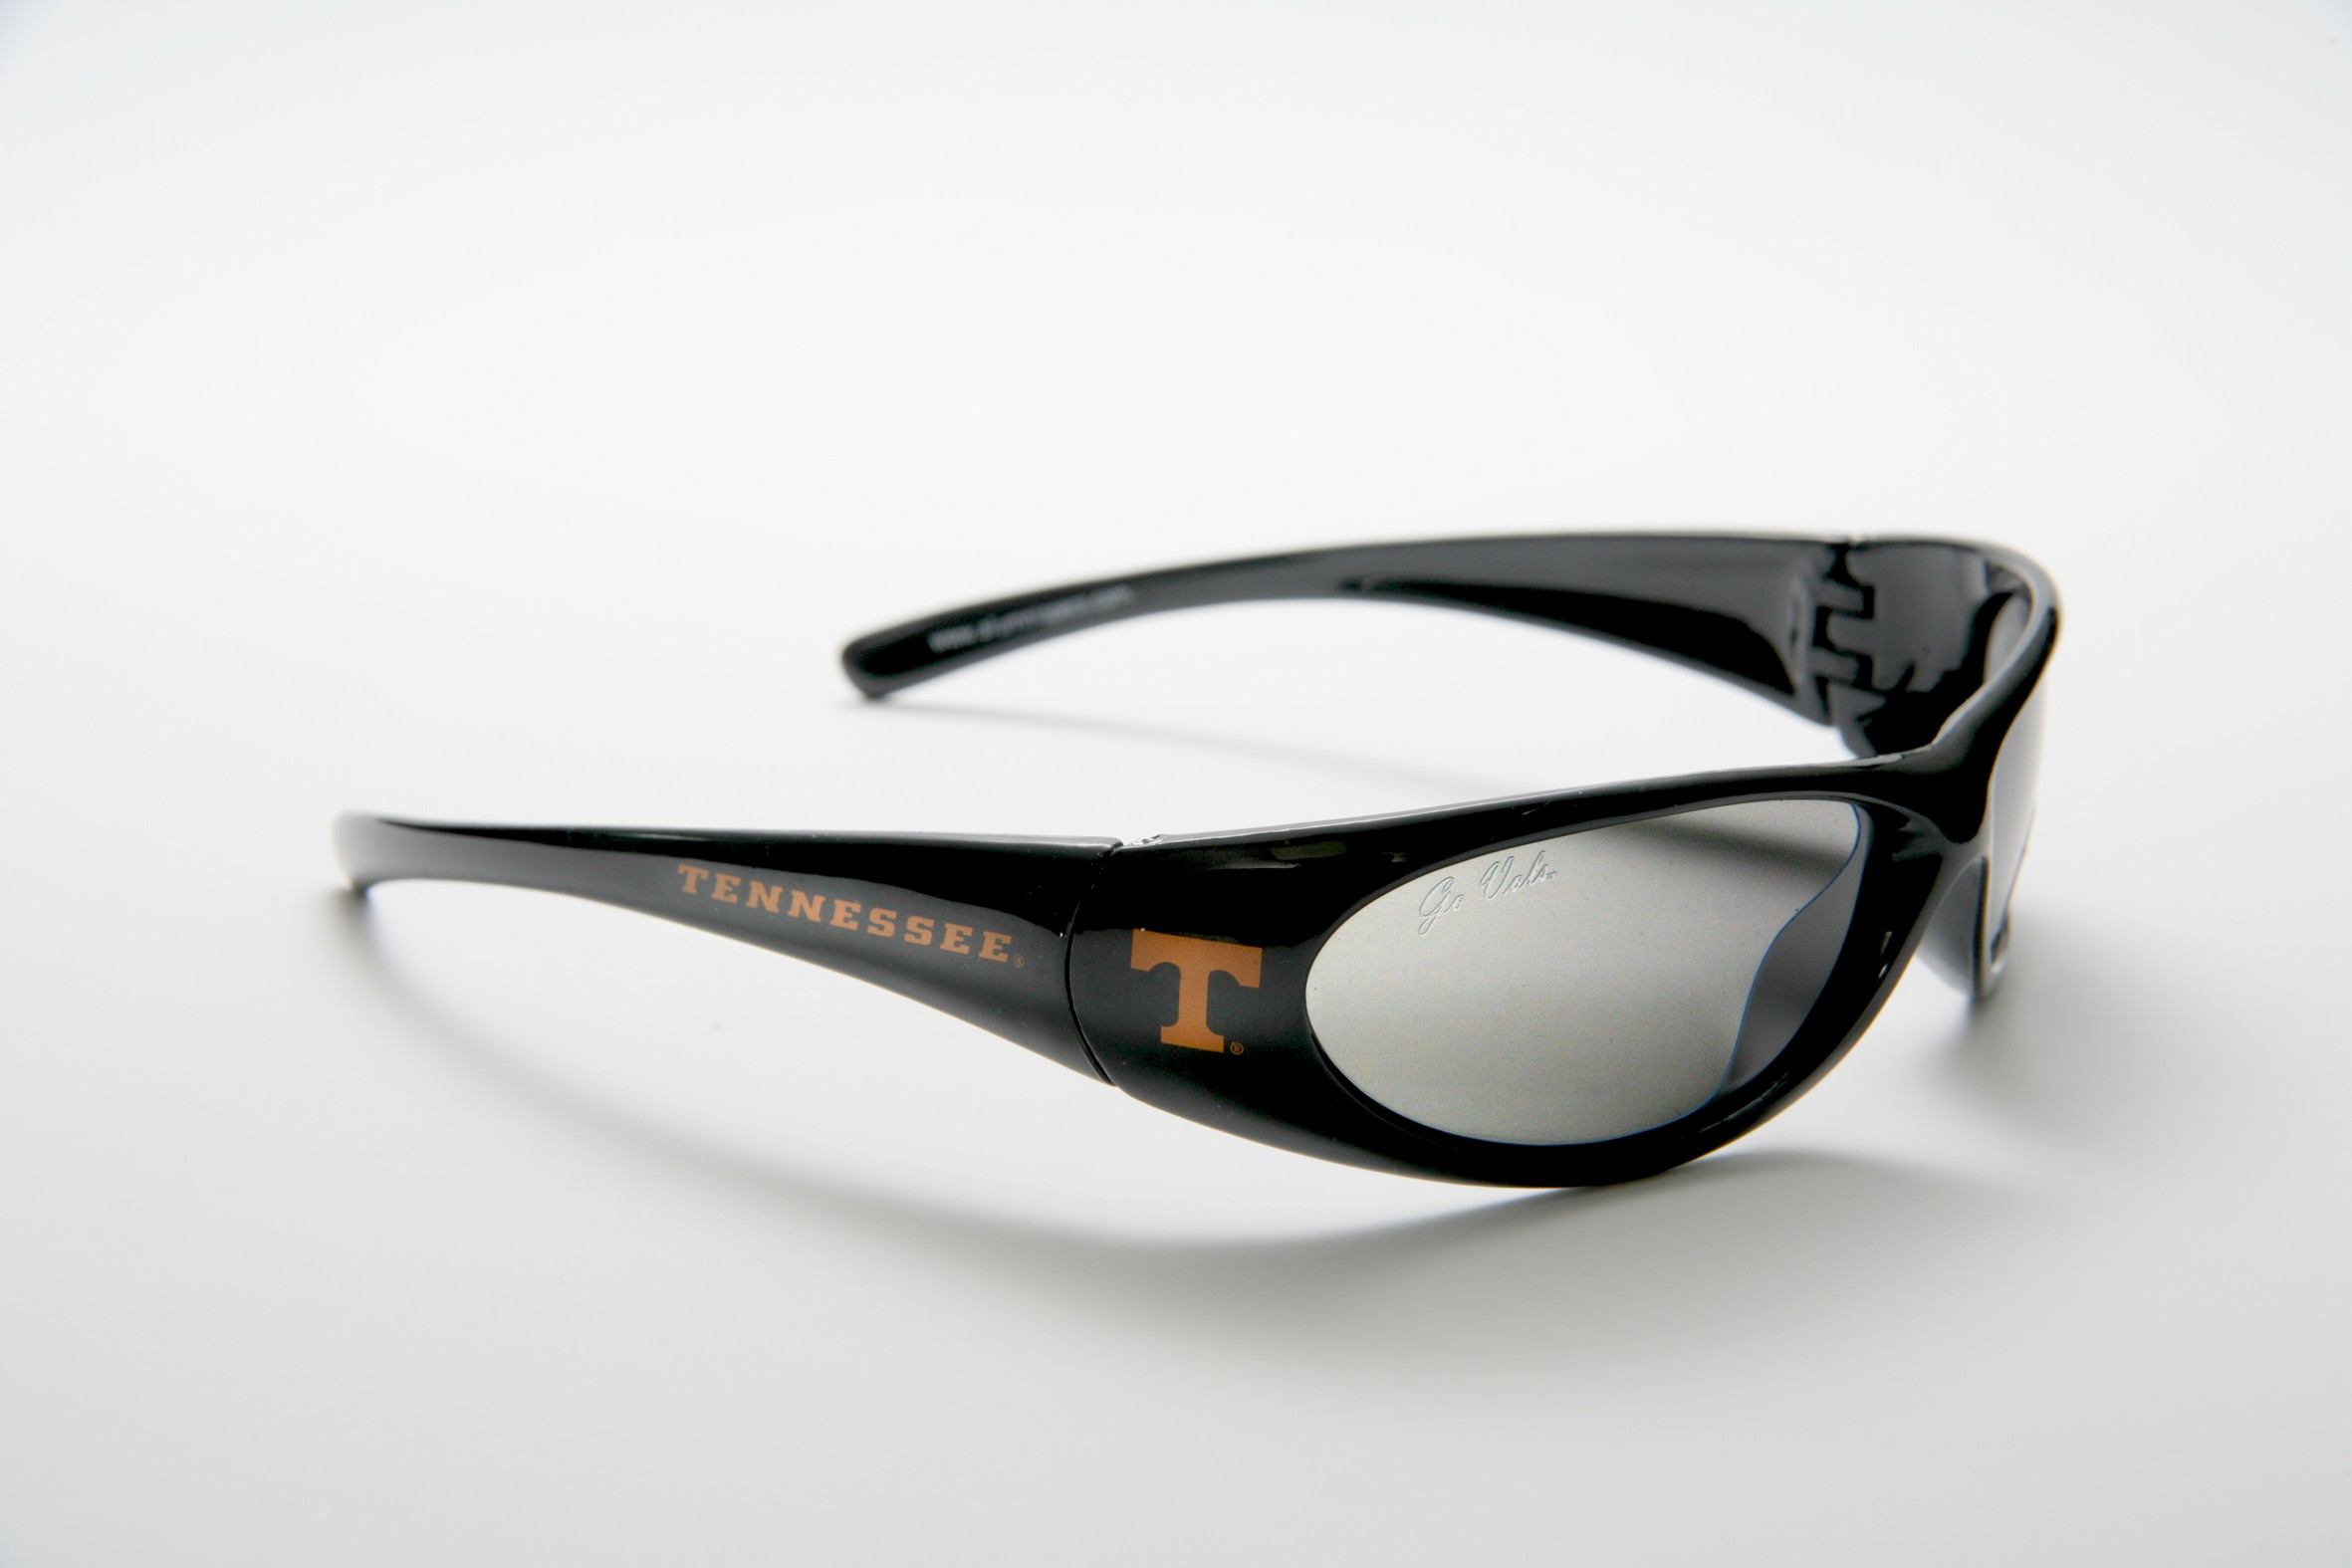 Tennessee Vols Polarized Sunglasses